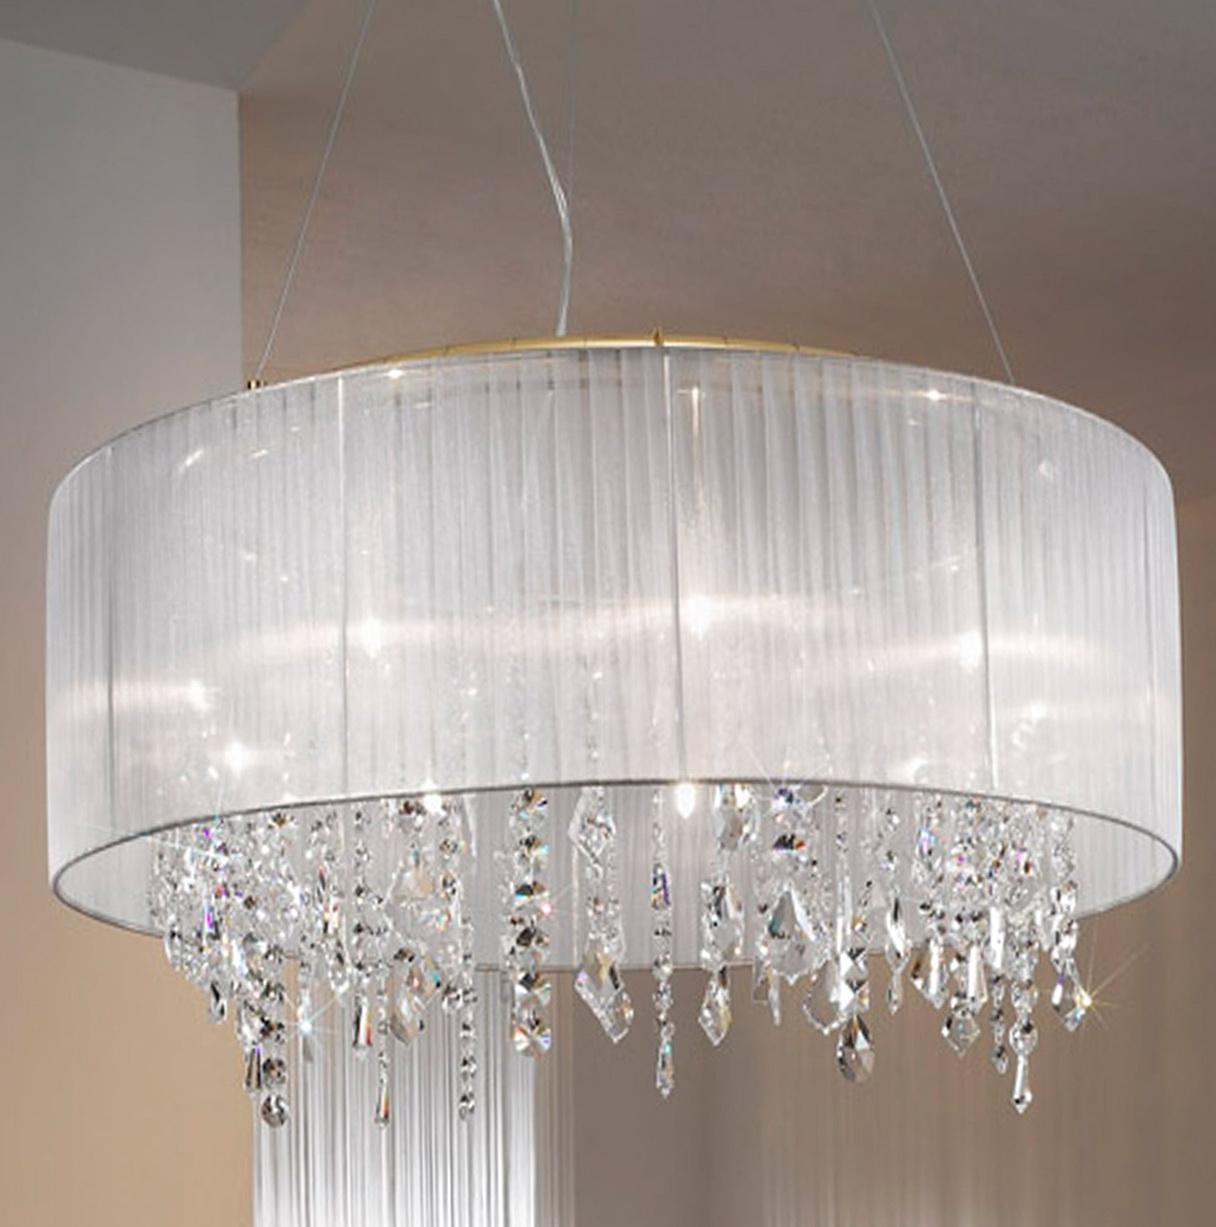 Chandelier With Shades Uk